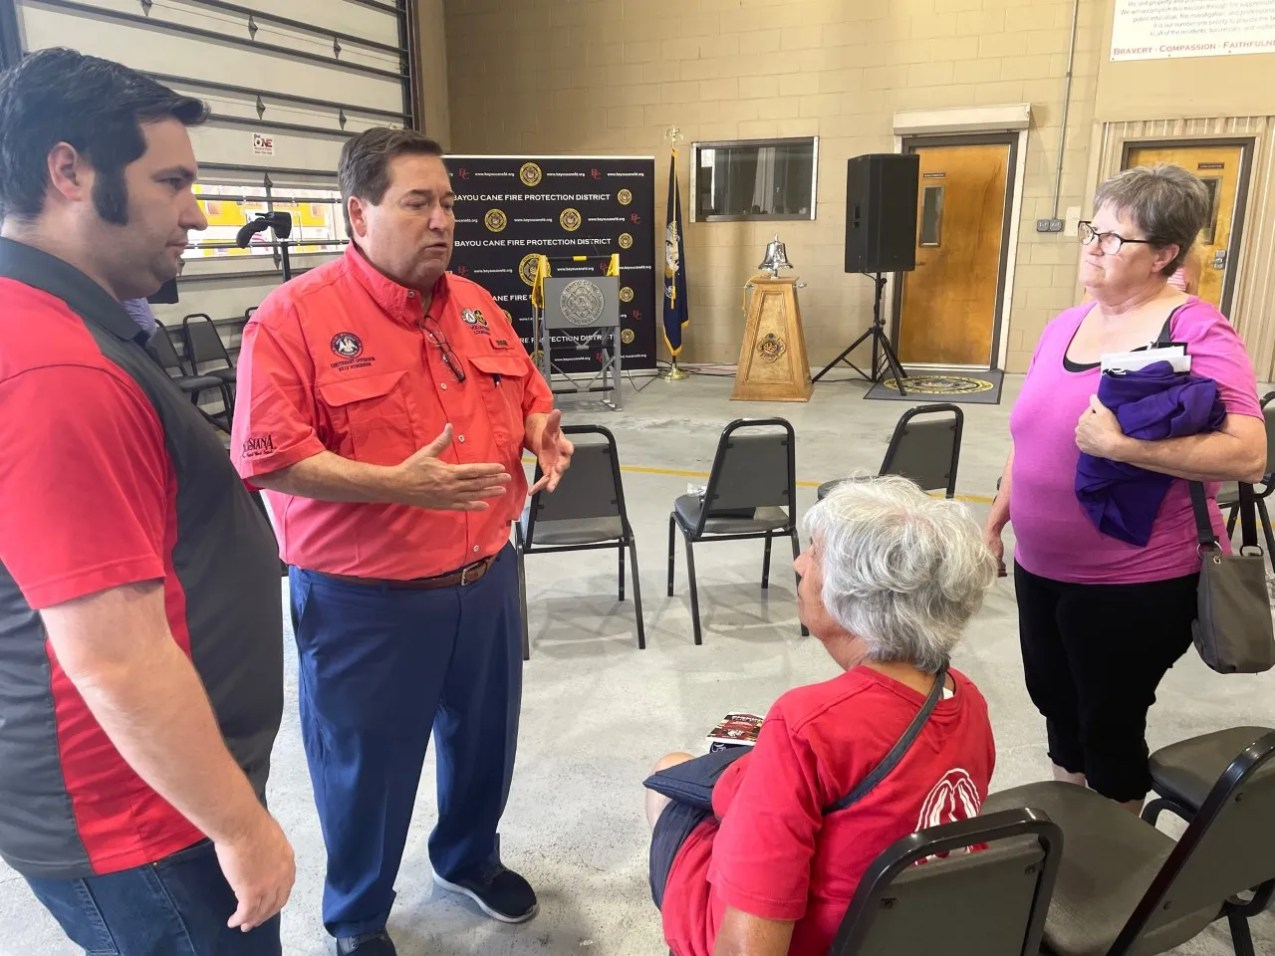 Louisiana Lt. Gov. Billy Nungesser, center, speaks with residents during a town hall meeting Friday in Houma about Hurricane Ida recovery.